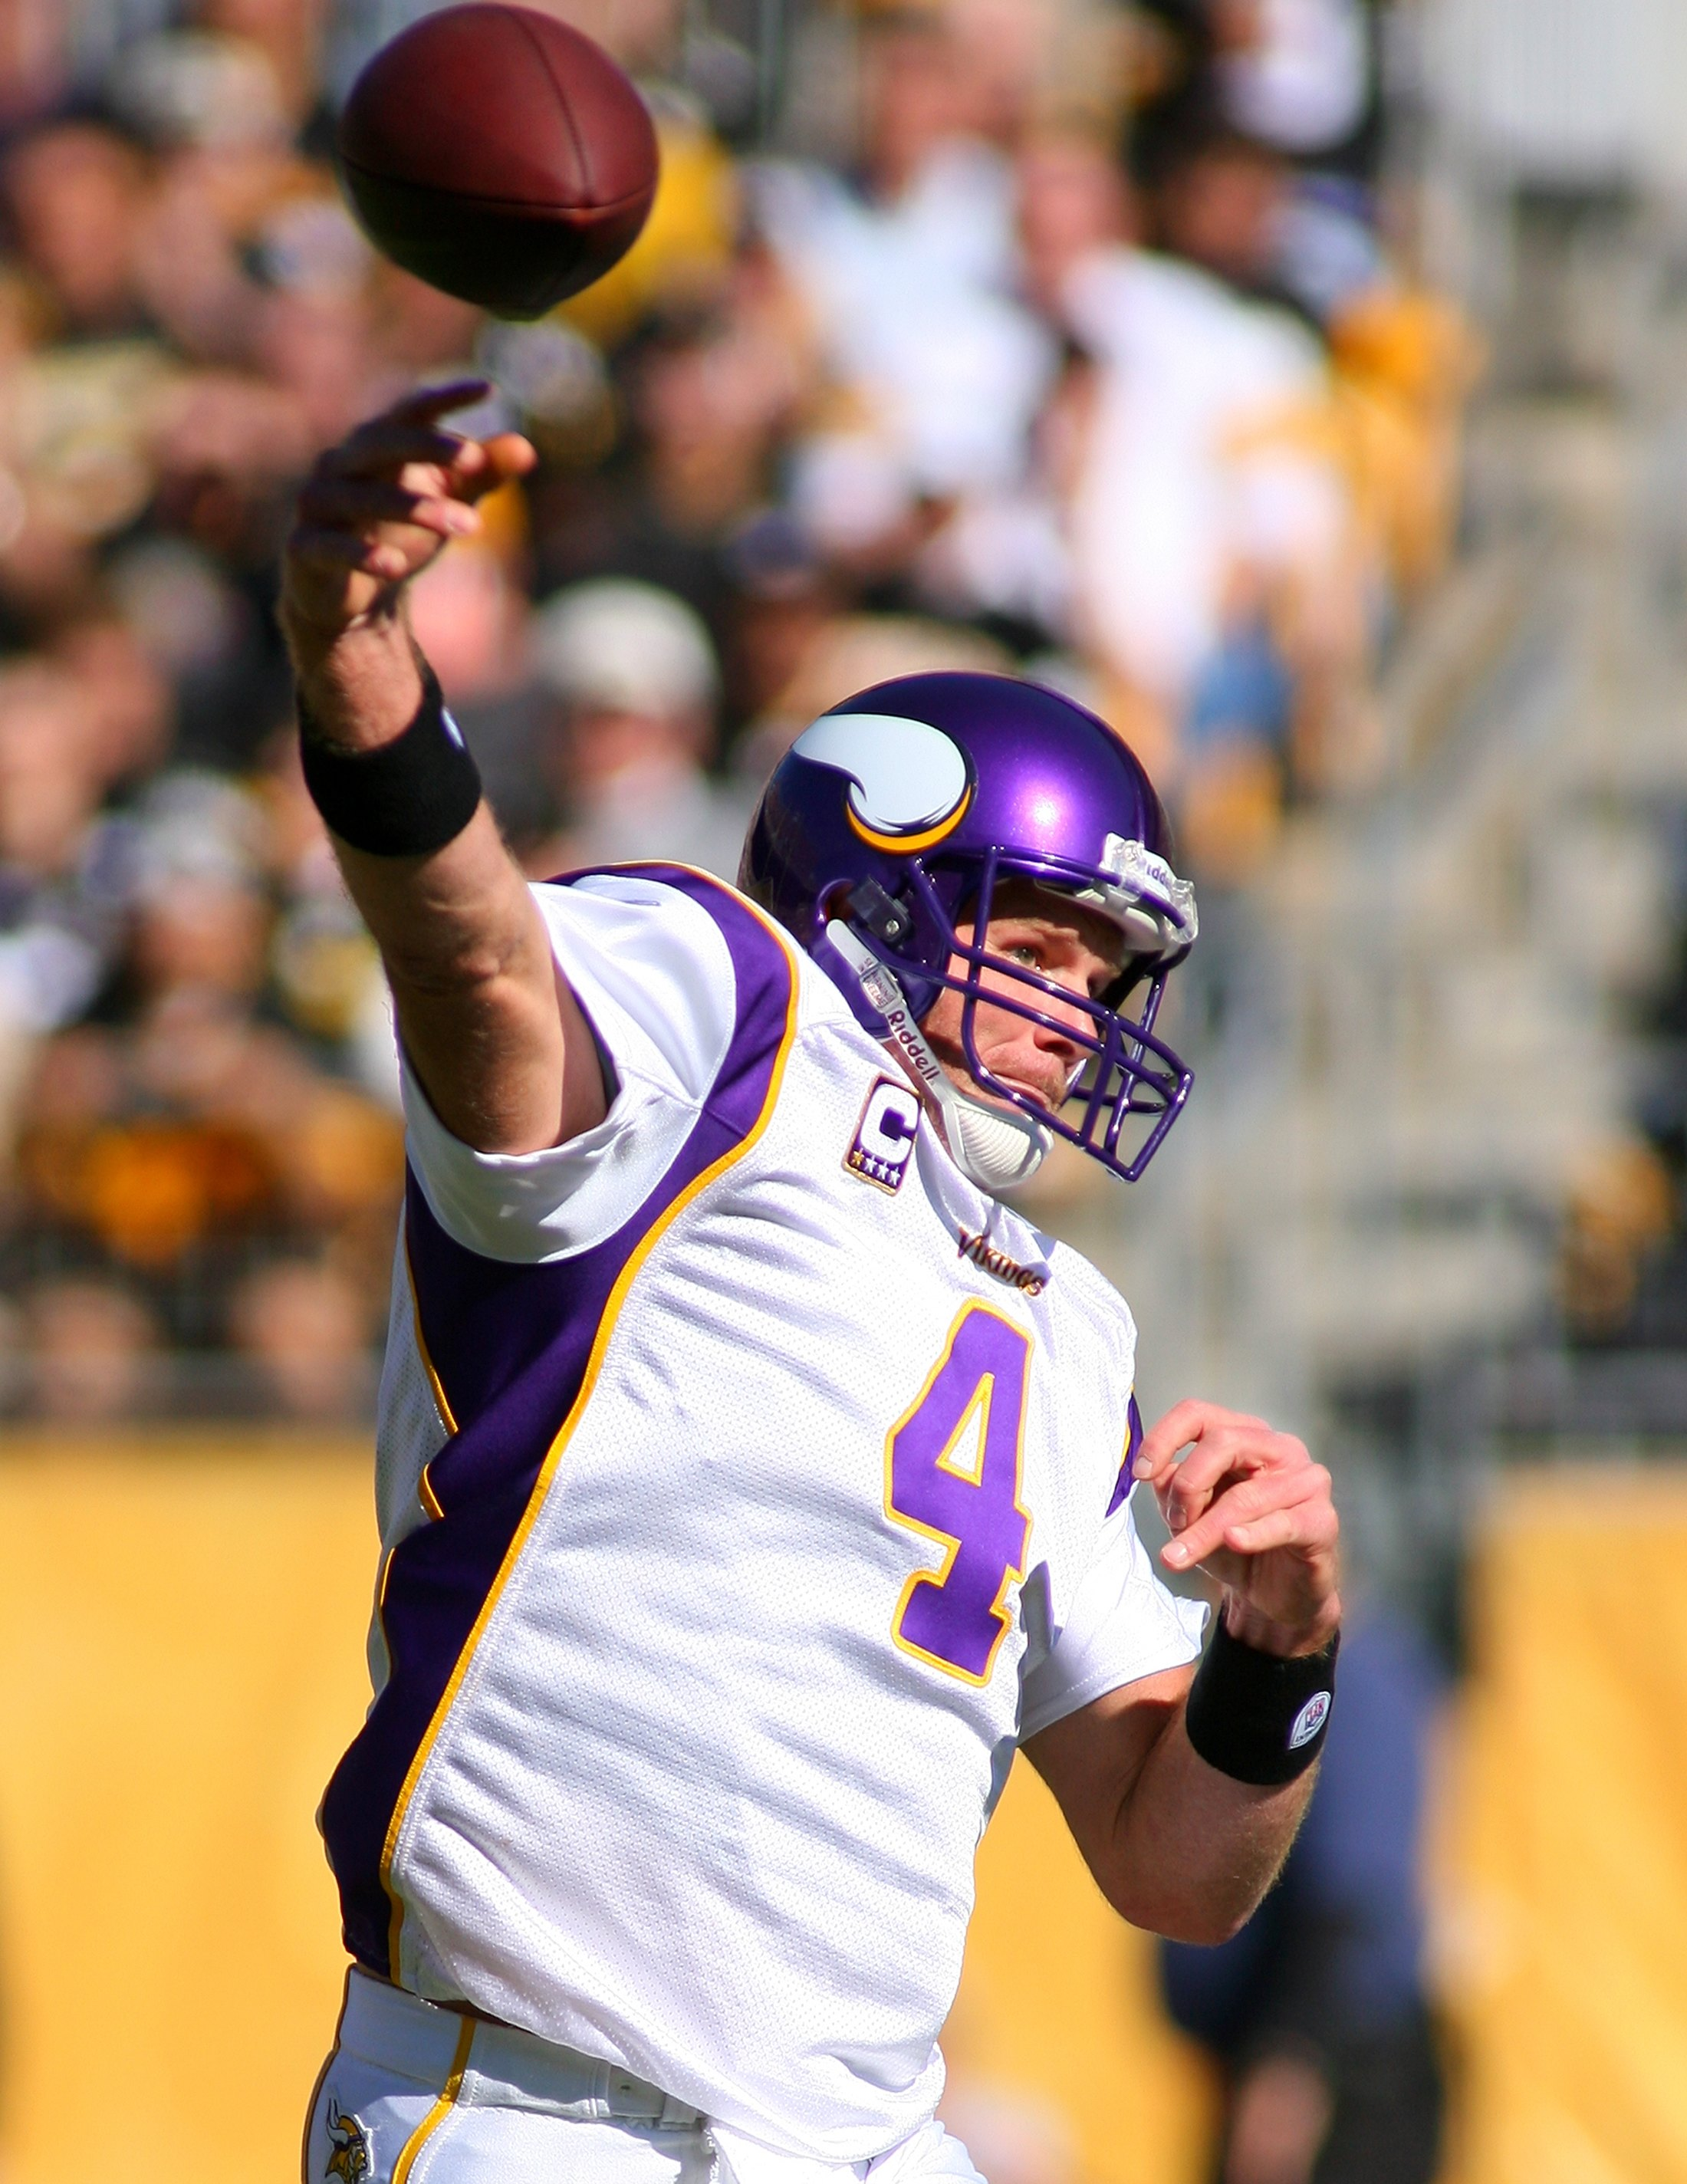 PITTSBURGH - OCTOBER 25:  Quarterback Brett Favre #4 of the Minnesota Vikings passes the ball play during the NFL game against the Pittsburgh Steelers at Heinz Field on October 25, 2009 in Pittsburgh, Pennsylvania. The Steelers defeated the Vikings 27-17.